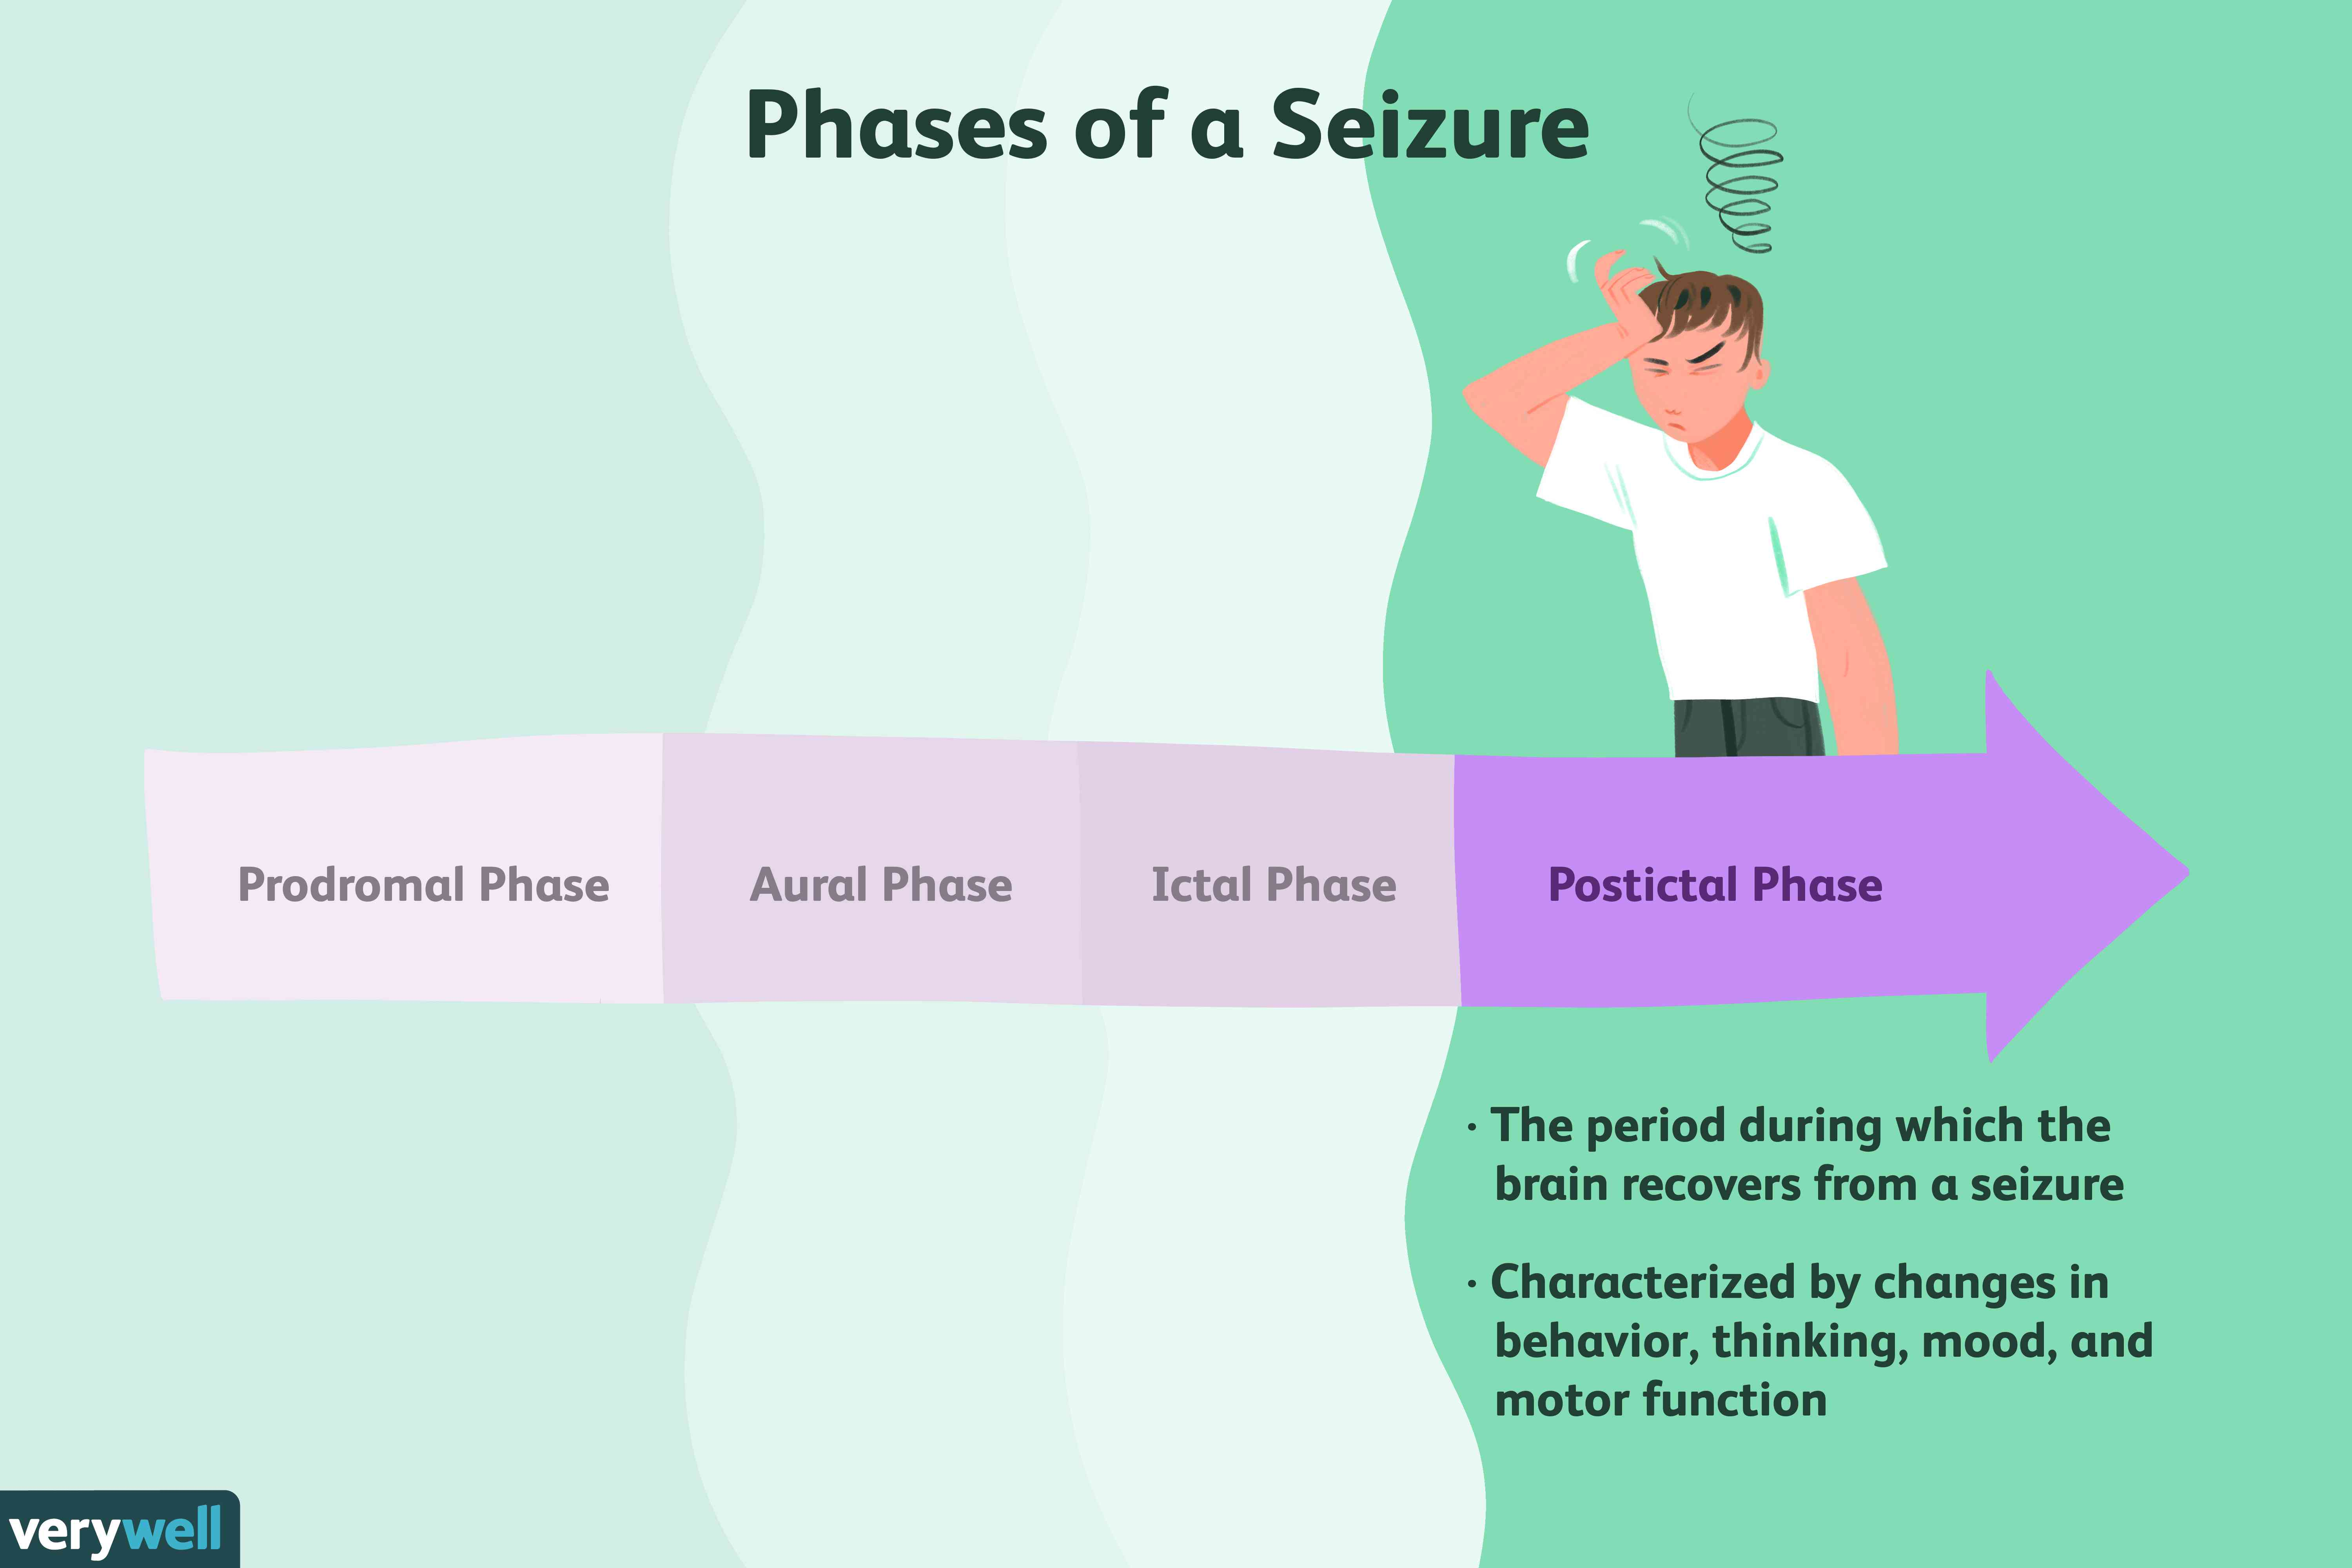 The Postictal Phase of a Seizure